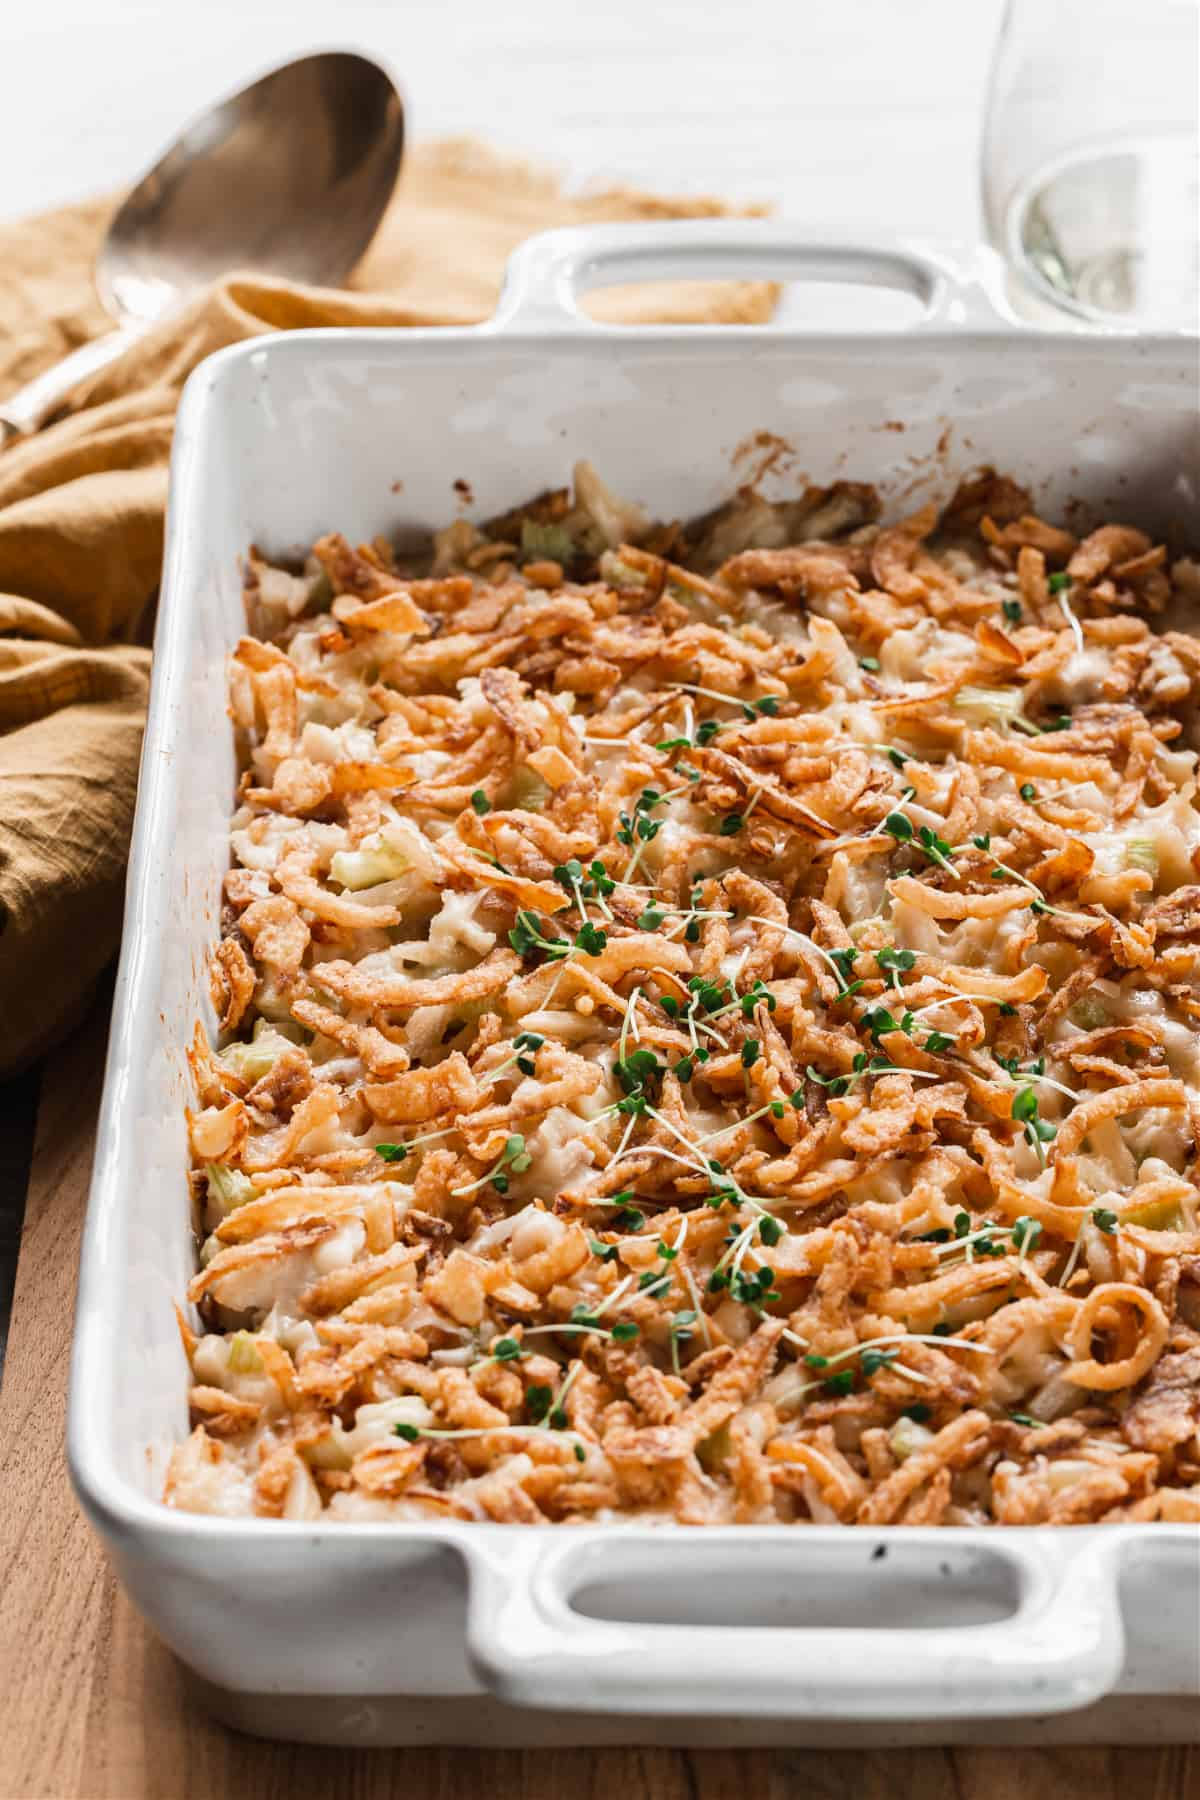 baked casserole with crispy fried onions on top